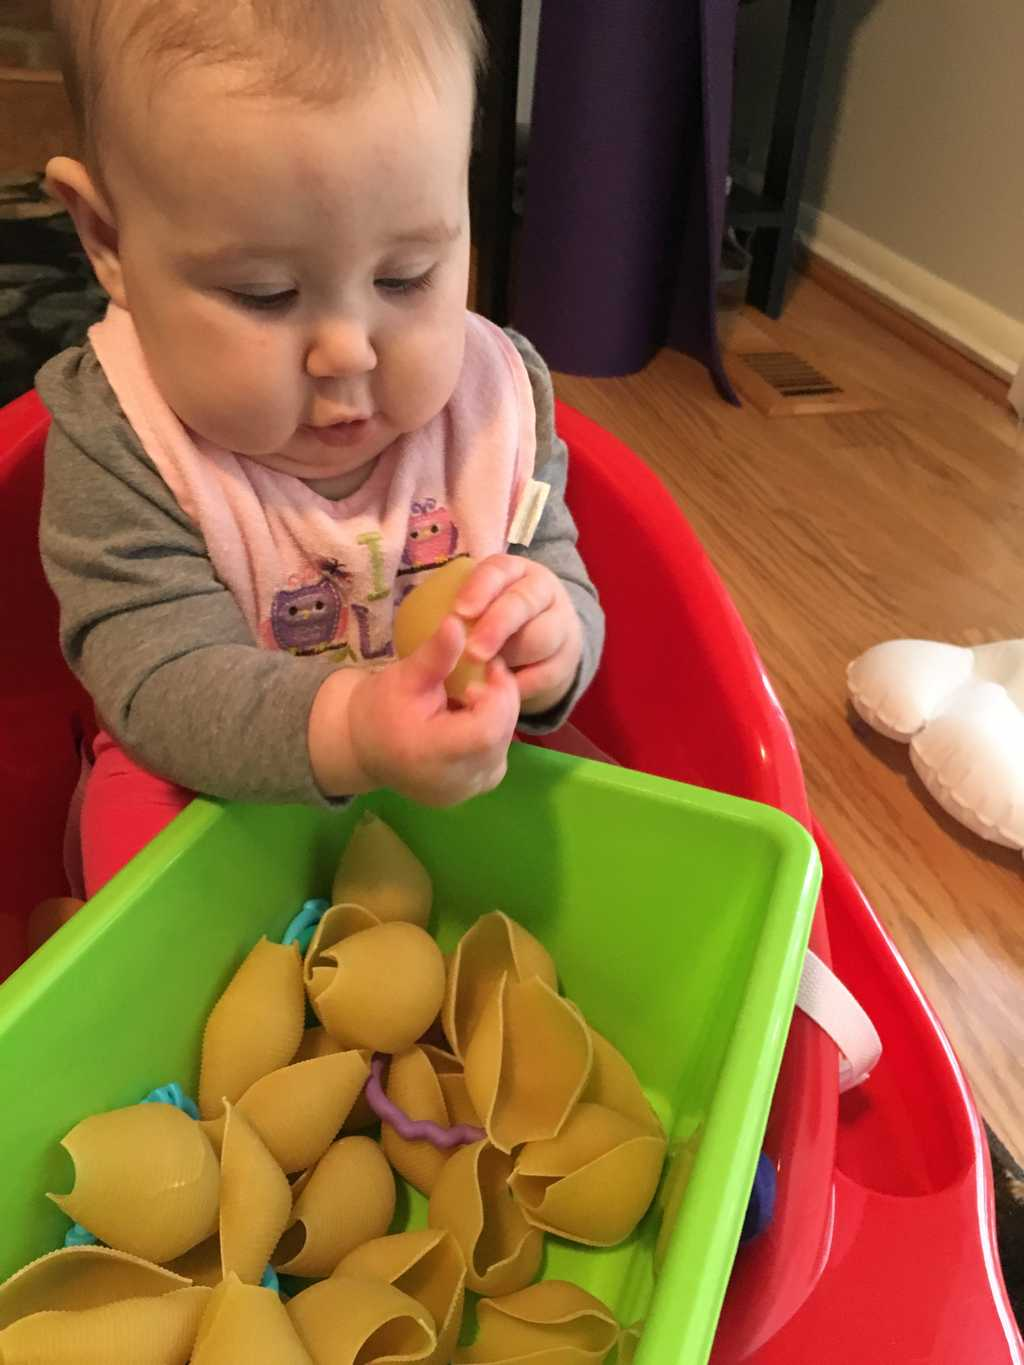 5 Fun Activities To Do With Your 6 Month Old